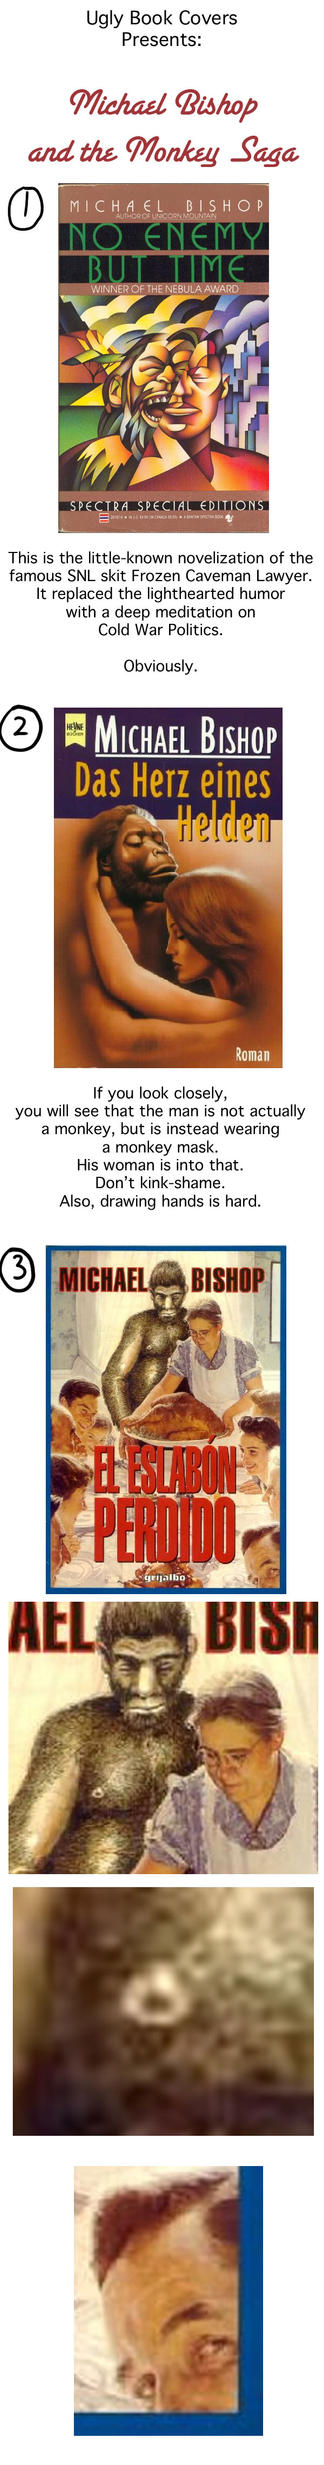 Ugly Book Cover Art : Ugly book covers michael bishop loves monkeys by